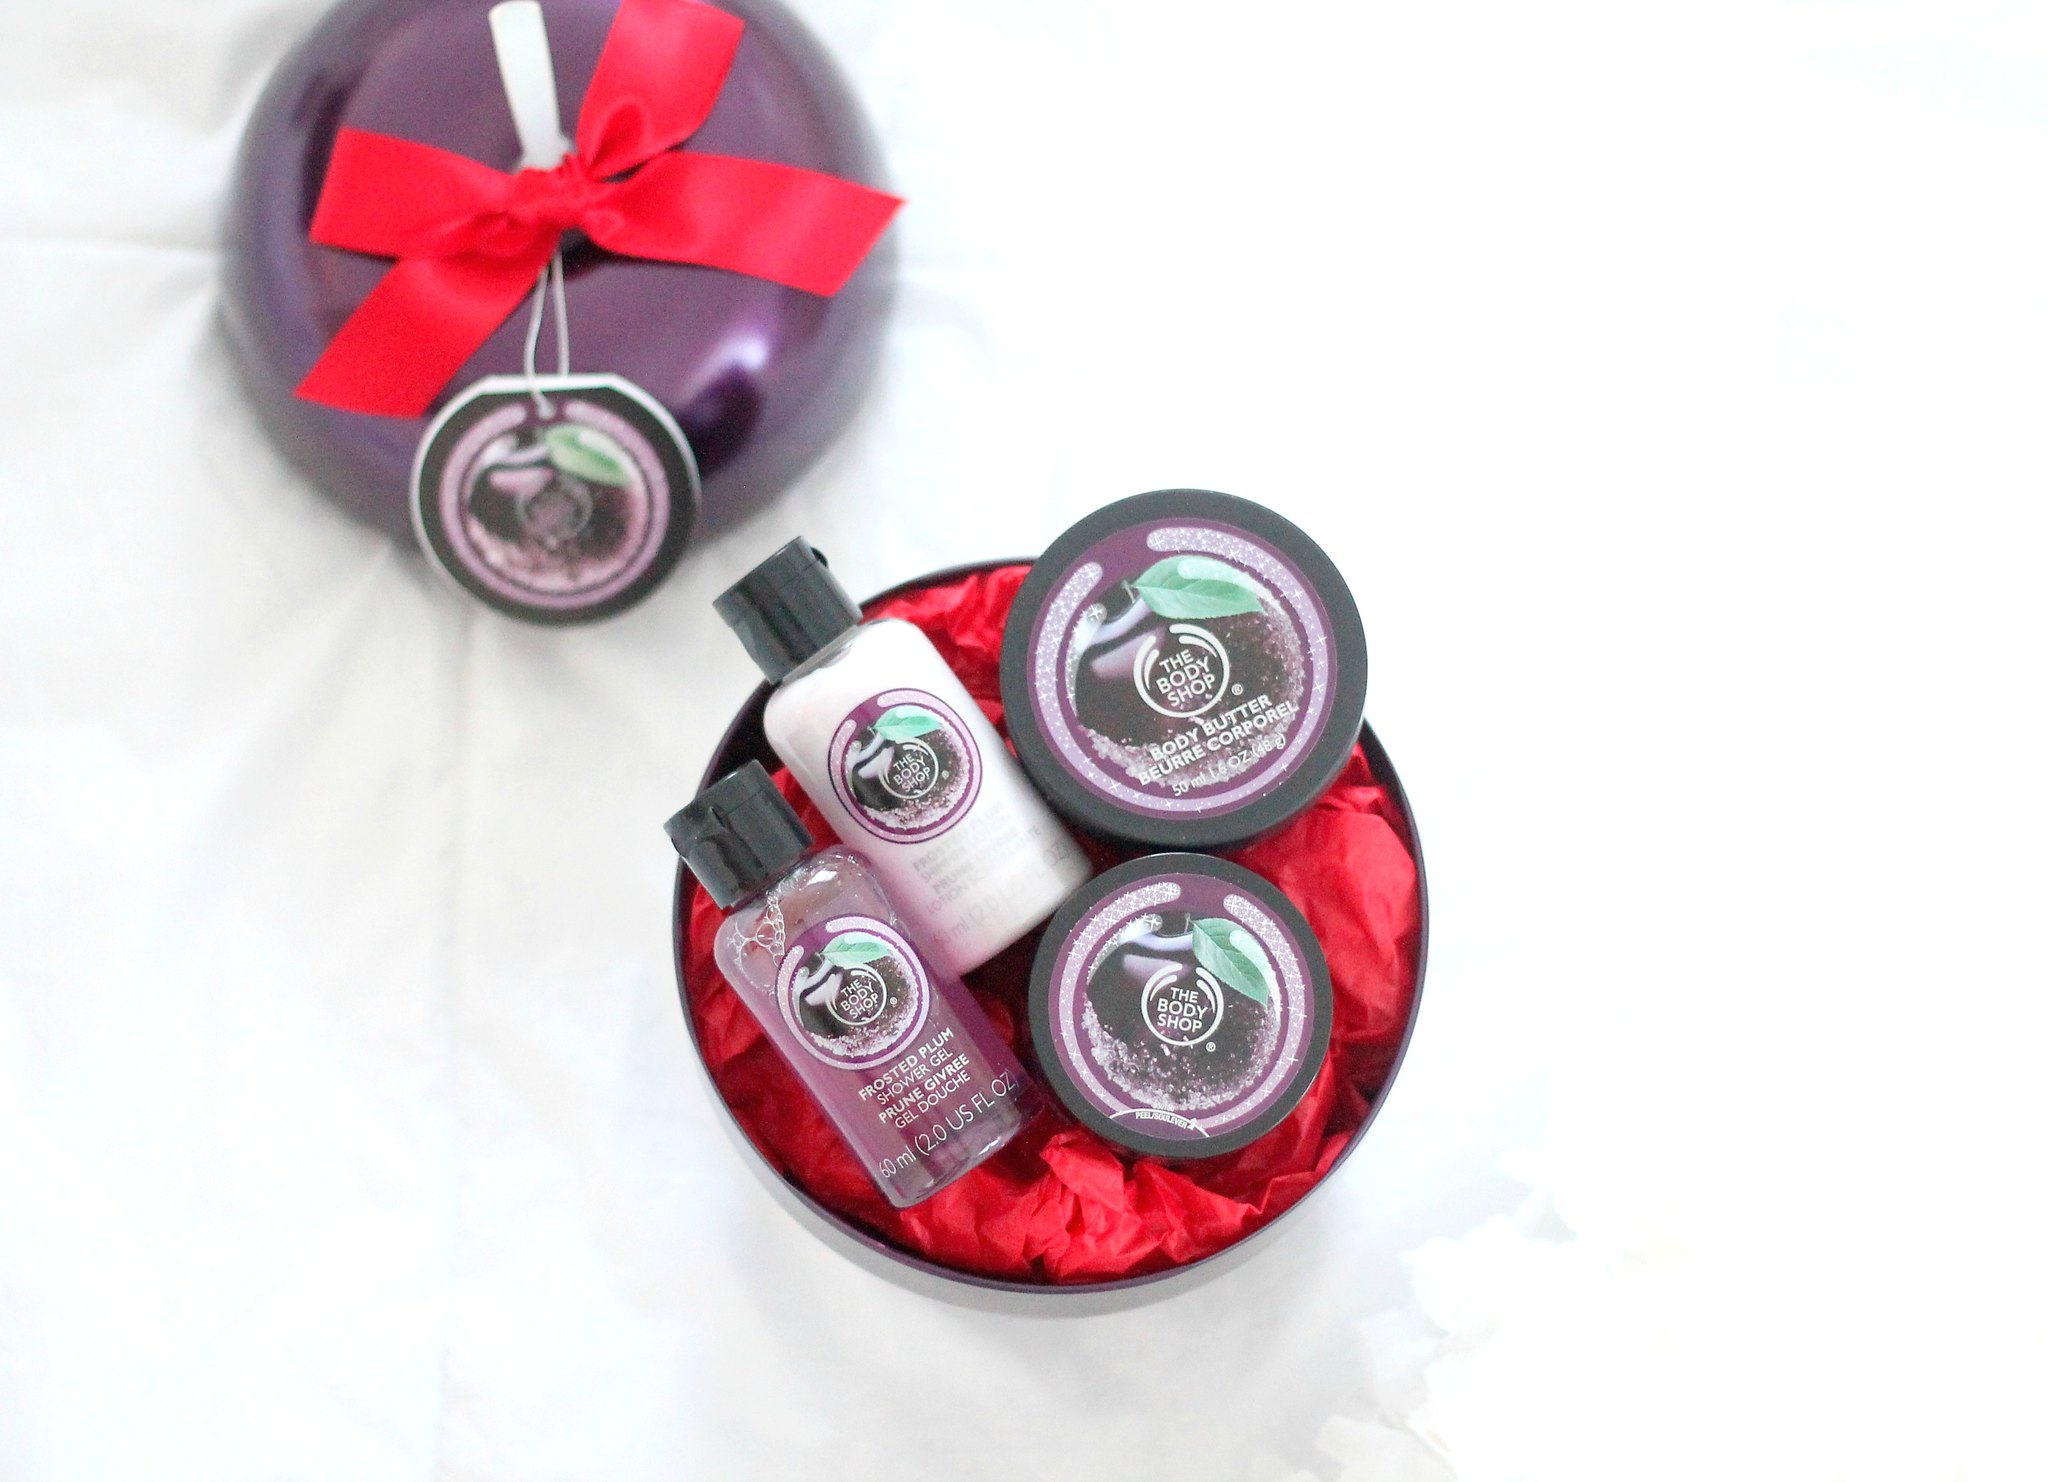 the body shop foresed plum